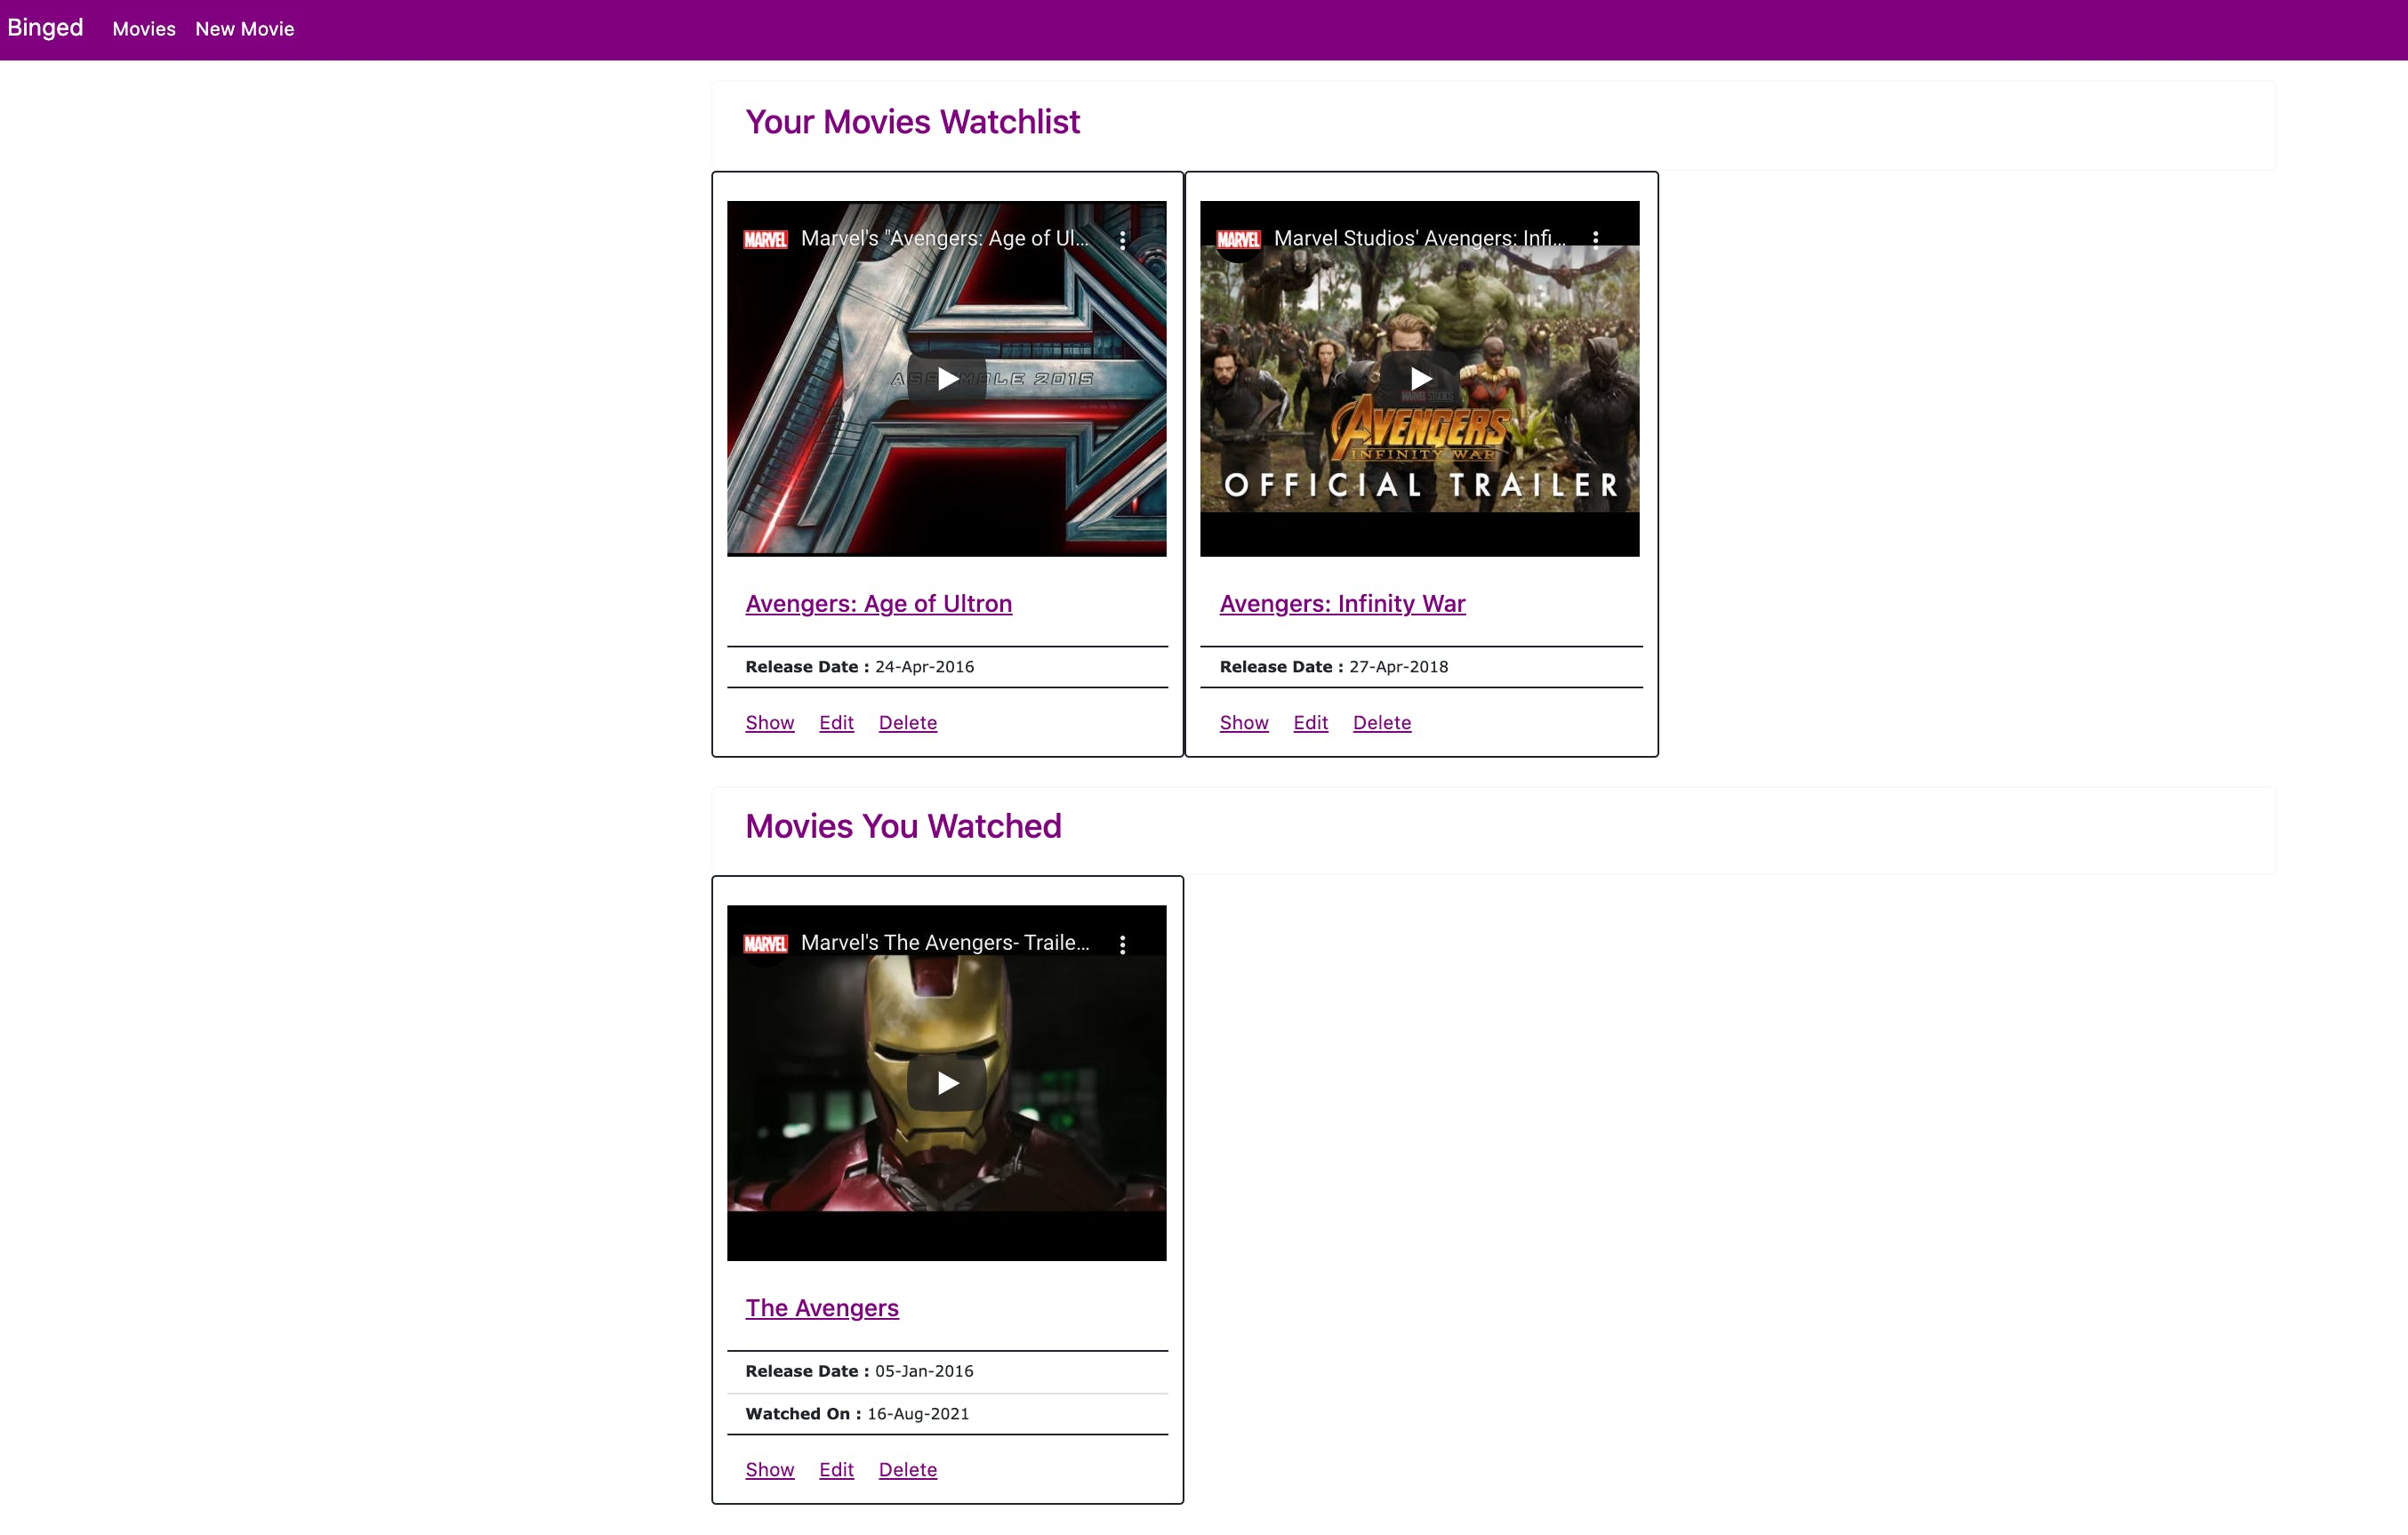 movie-tracker-home-page.png